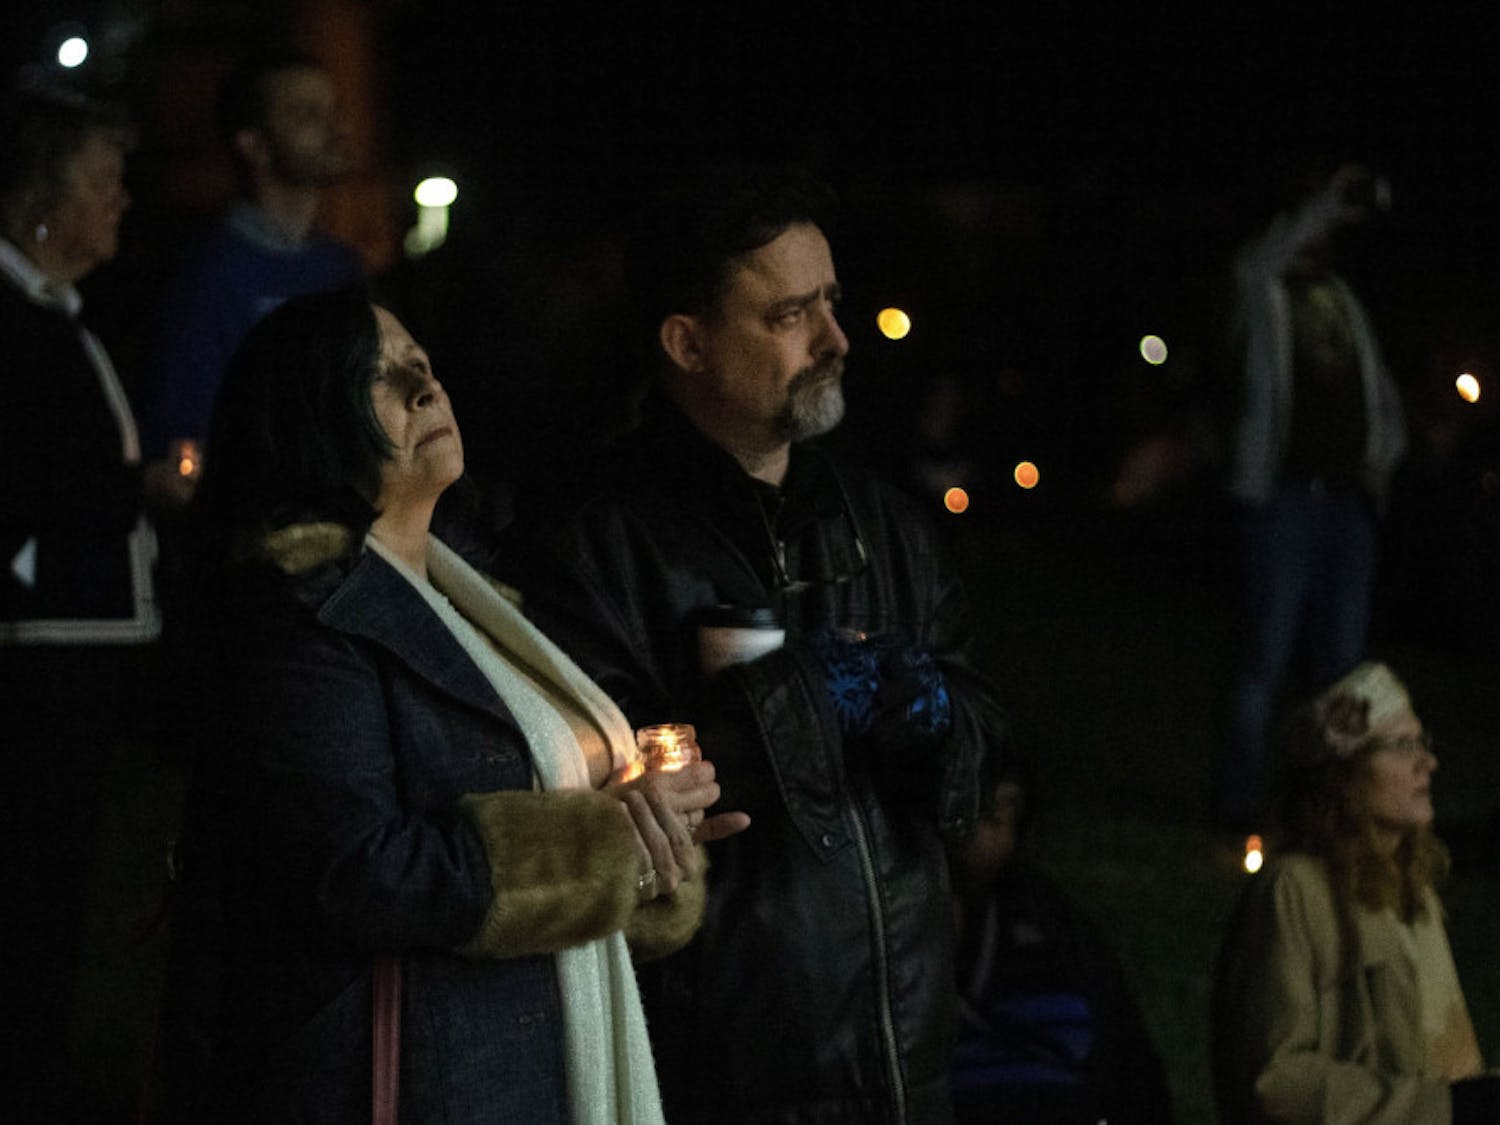 Carmen King, 55, and Christopher King, 58, stand in solidarity Wednesday evening as the names of transgender people who have lost their lives to transphobic violence are read aloud during the Transgender Day of Remembrance at Depot Park. The King's said they have a transgender daughter who lives in Holland.